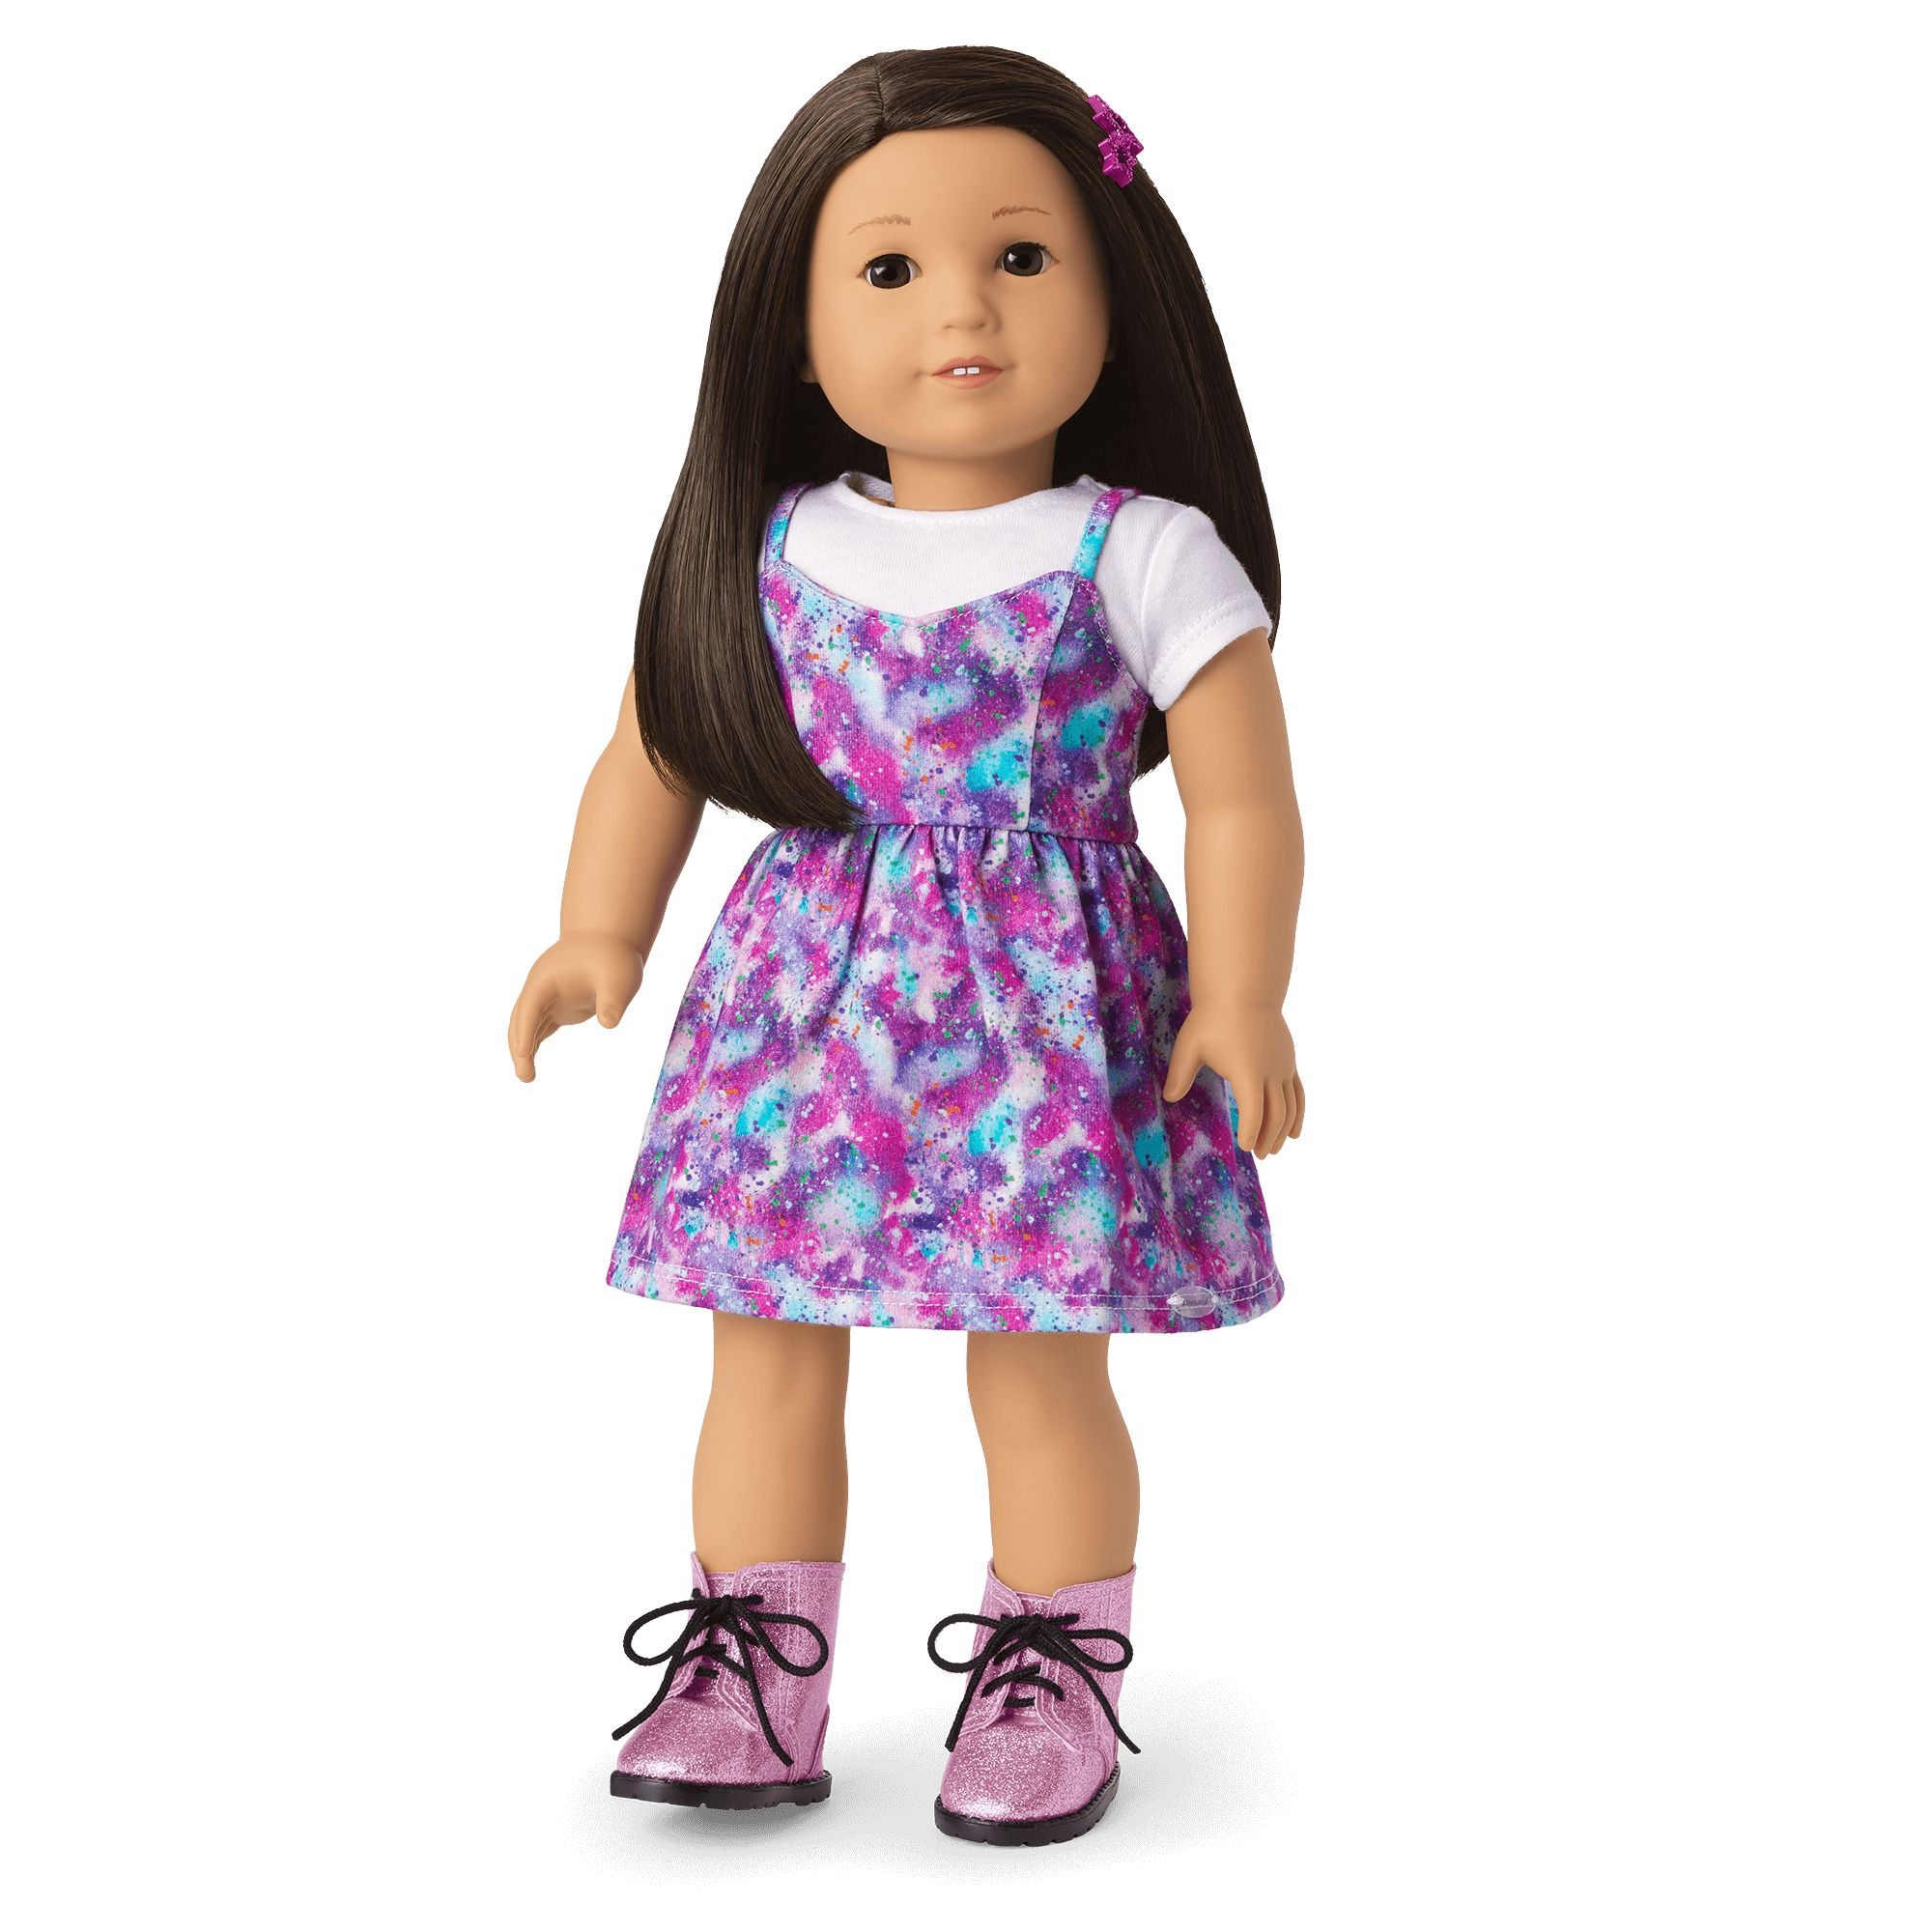 Be Creative Outfit for 5-inch Dolls